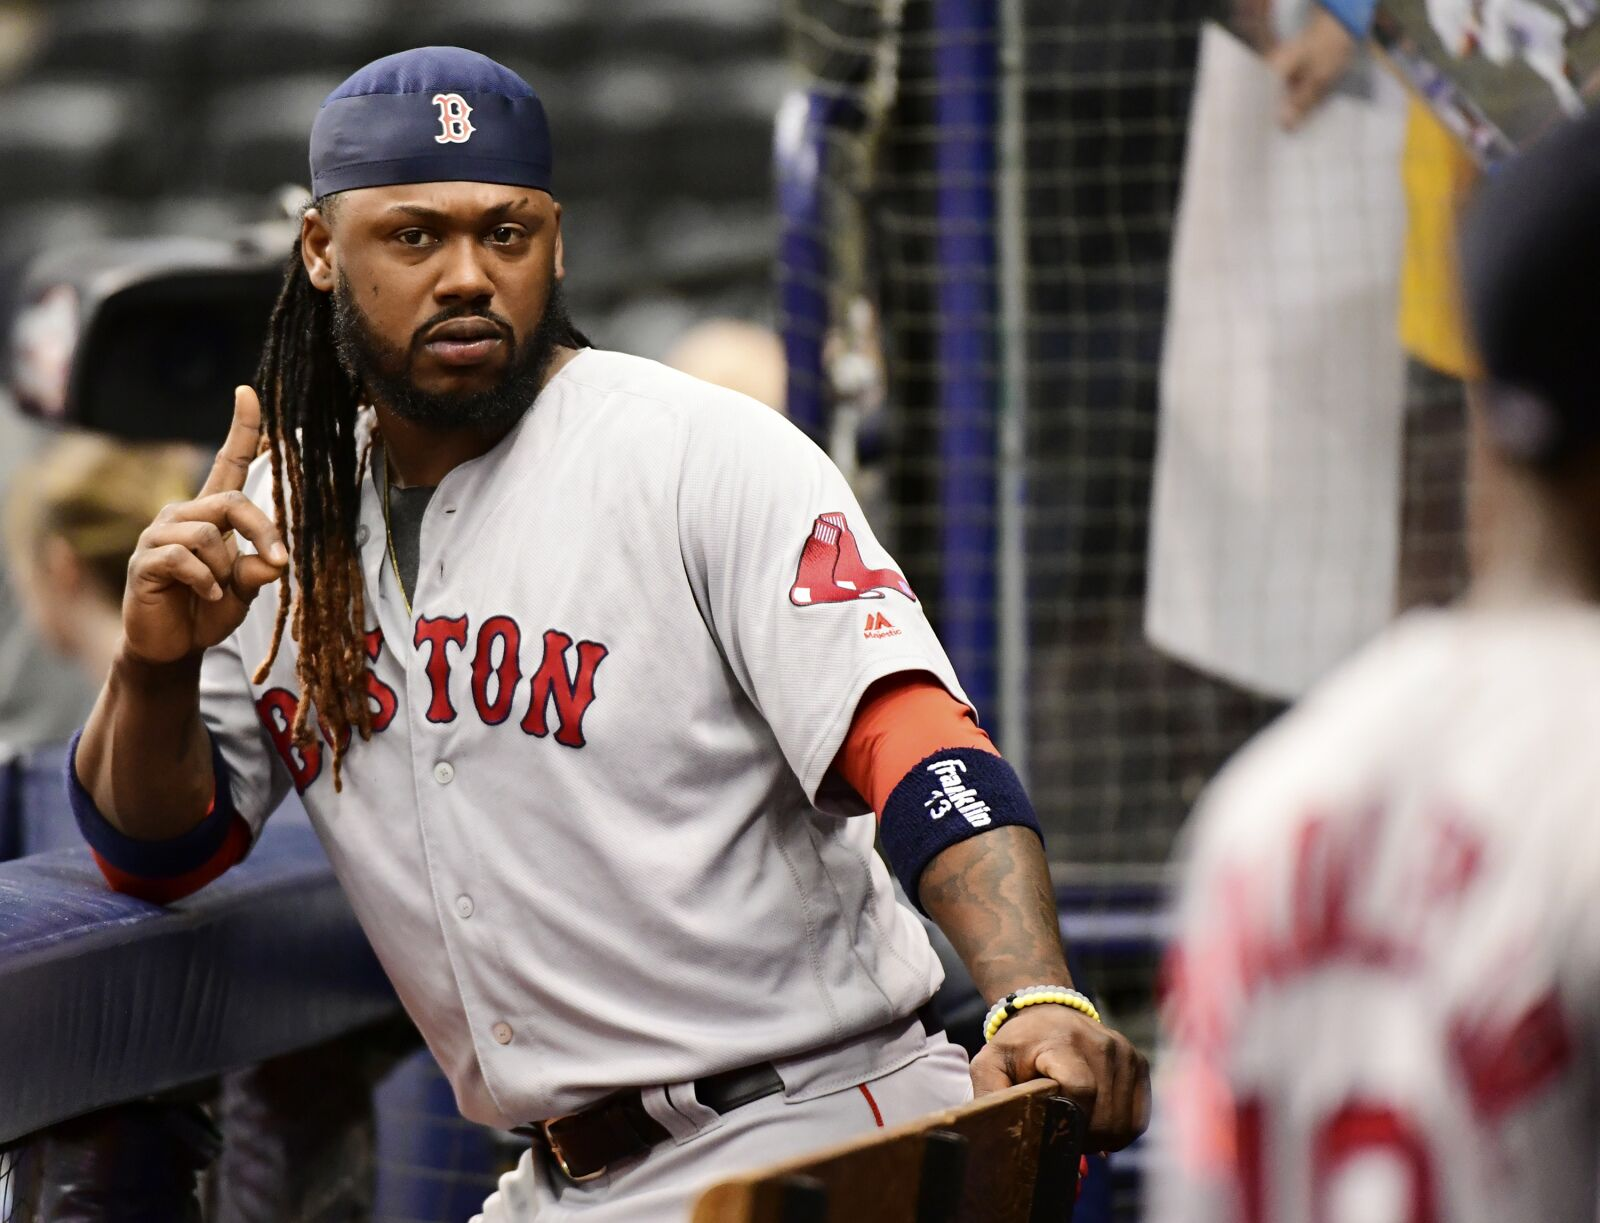 ST PETERSBURG, FL - MAY 23: Hanley Ramirez #13 of the Boston Red Sox poses before taking the field against the Tampa Bay Rays on May 23, 2018 at Tropicana Field in St Petersburg, Florida.(Photo by Julio Aguilar/Getty Images)